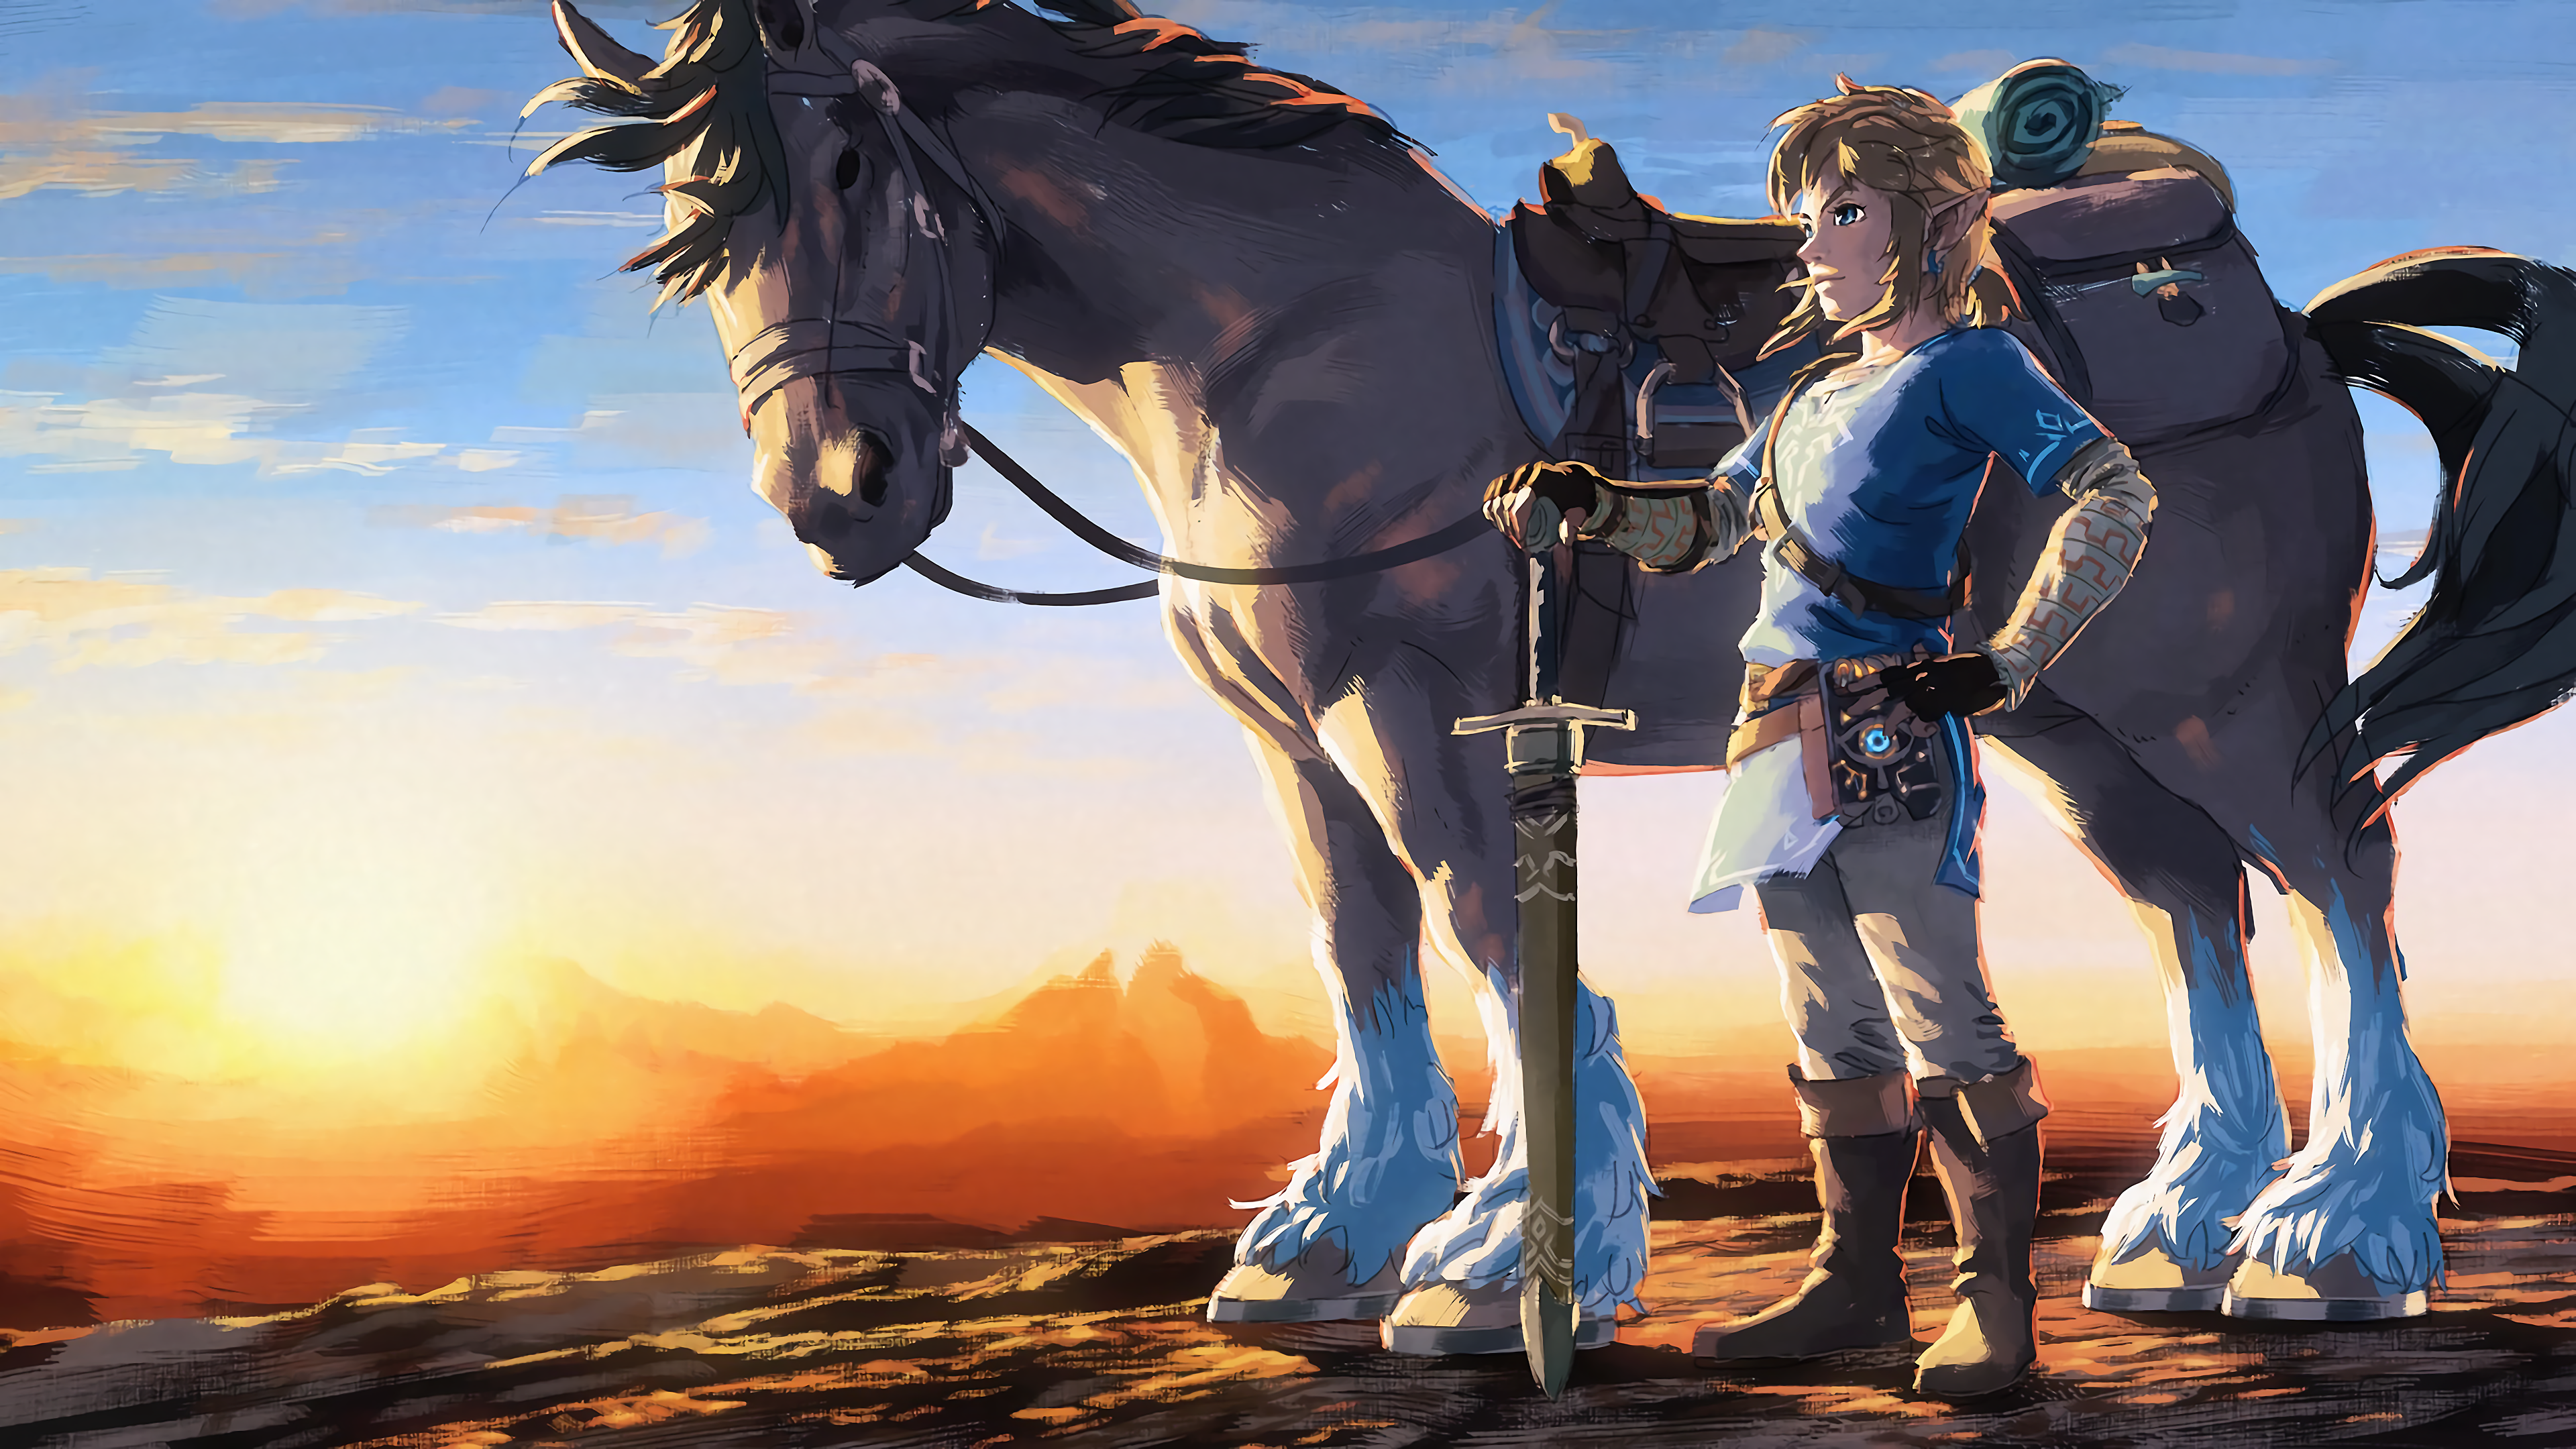 The legend of zelda breath of the wild wallpapers - Hd wilderness wallpapers ...